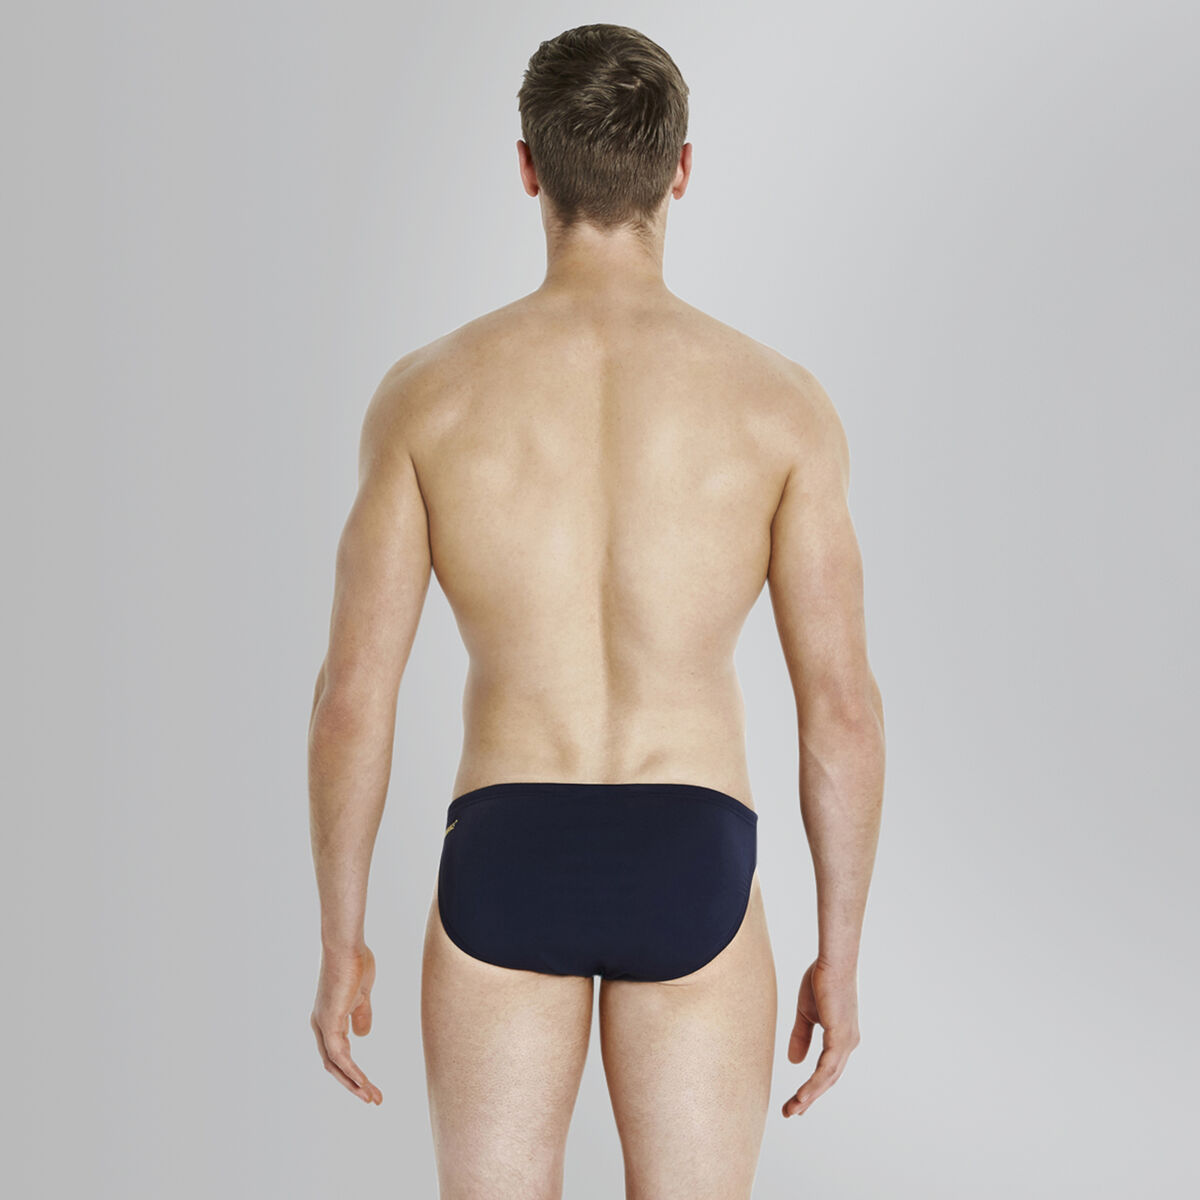 Powerform 5cm Brief